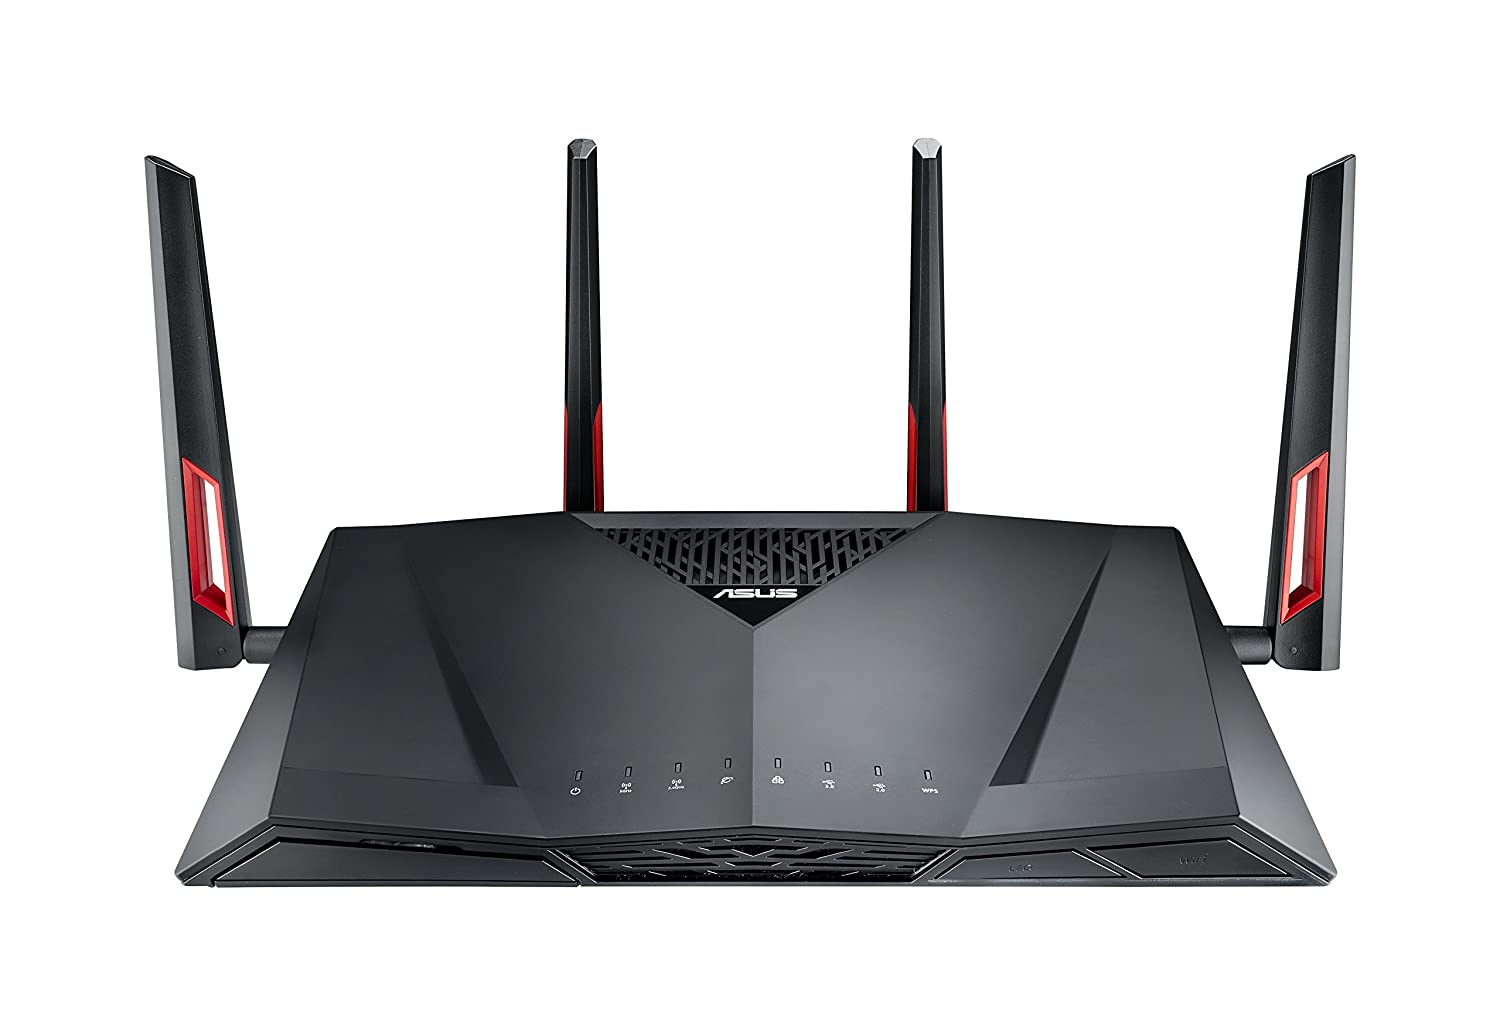 ASUS RT-AC88U Wireless-AC3100